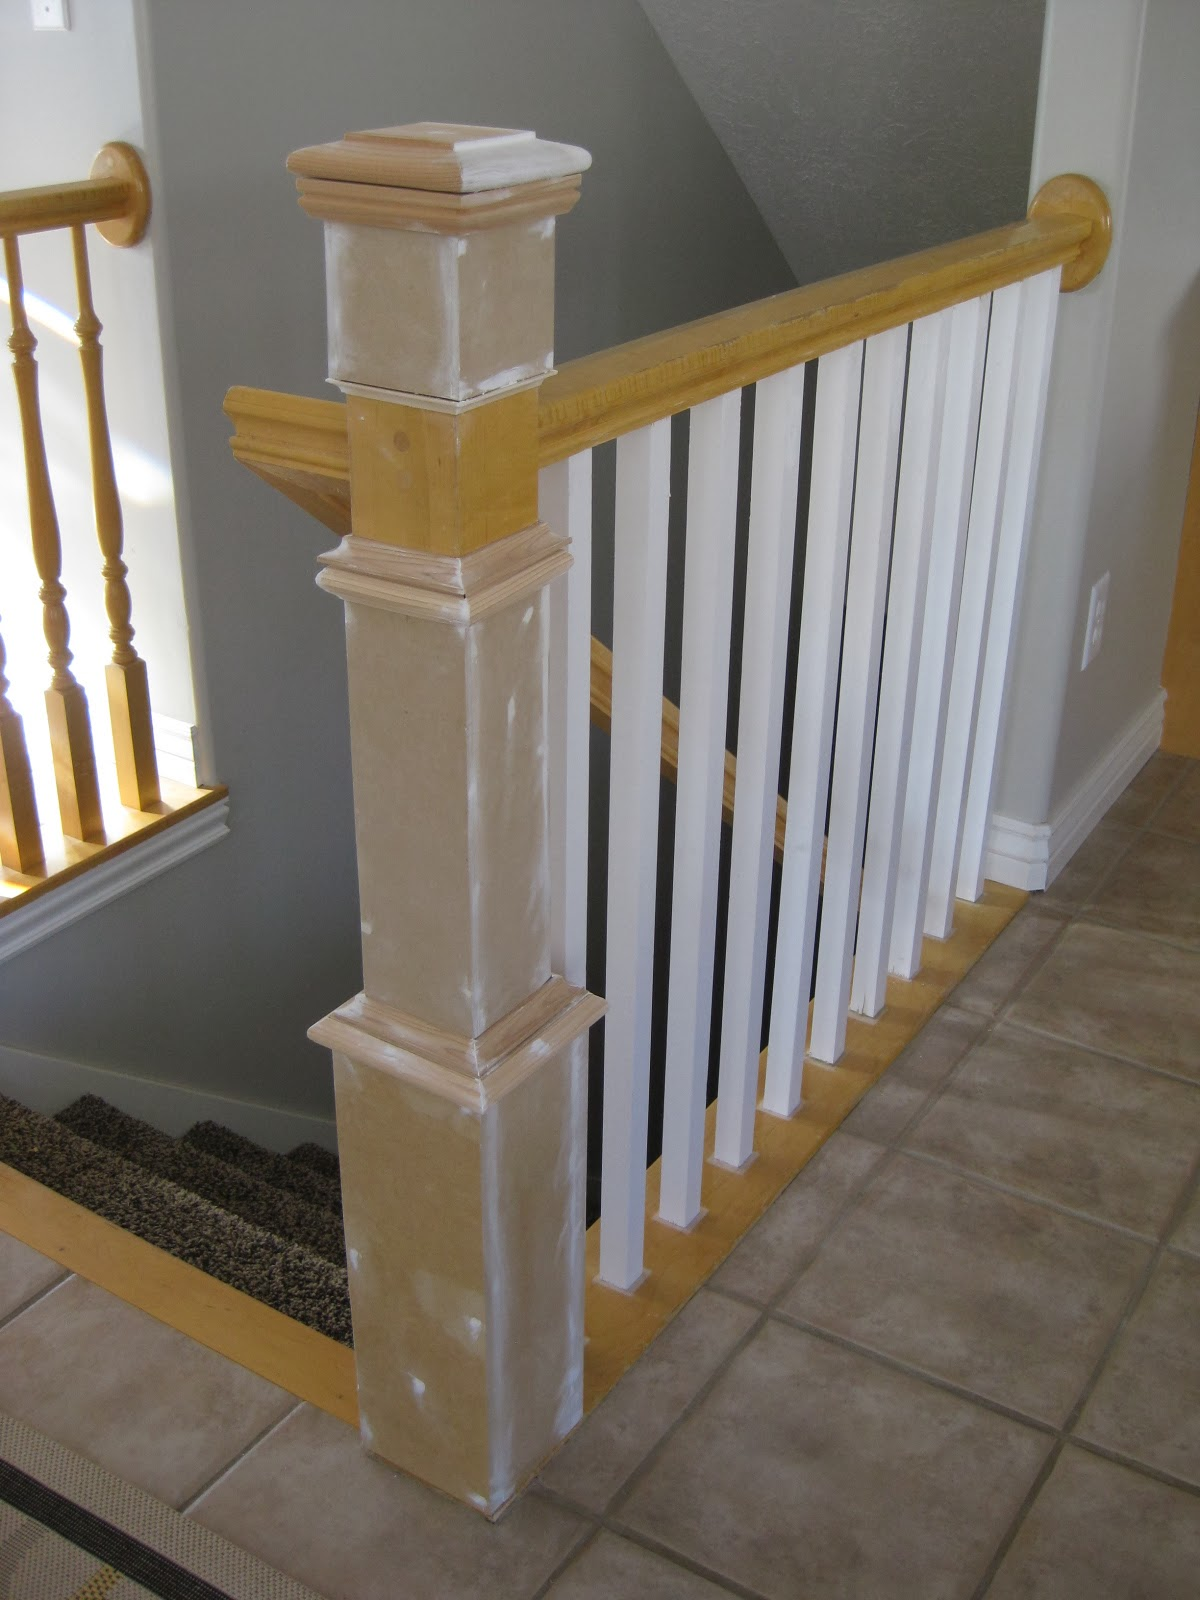 Remodelaholic stair banister renovation using existing newel post diy stair banister refacing and renovation tda decorating and design featured on remodelaholic solutioingenieria Gallery